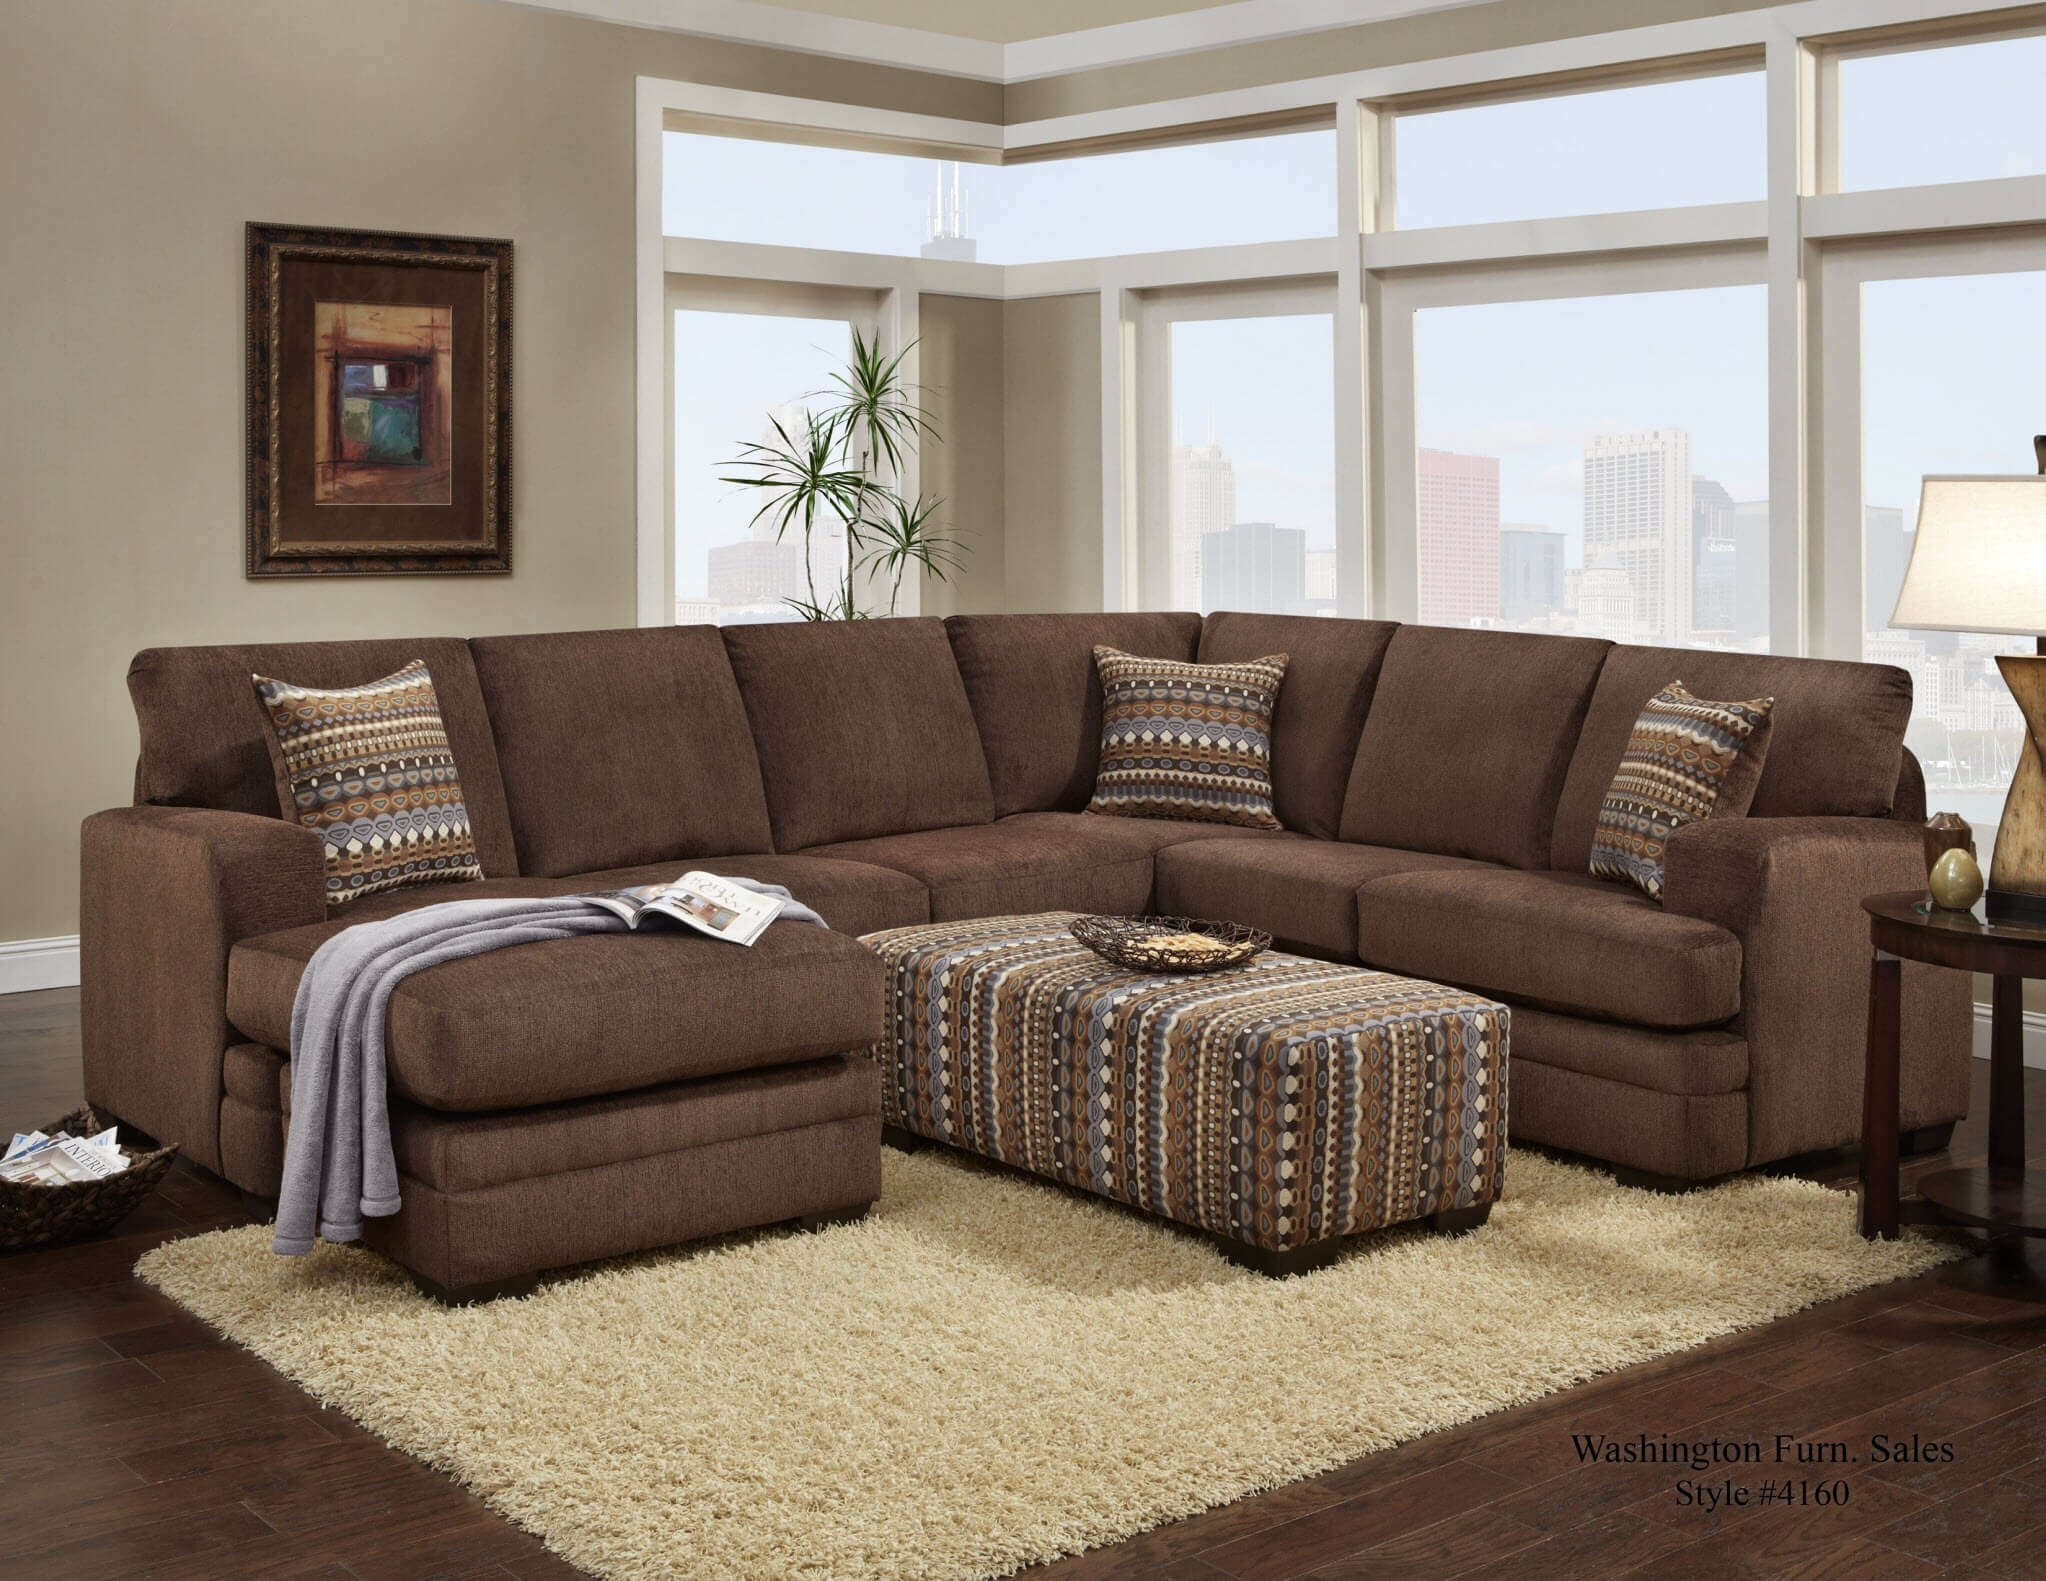 Hillel Chocolate Sectional | Sectional Sofa Sets Inside Chocolate Sectional Sofas (Image 5 of 10)